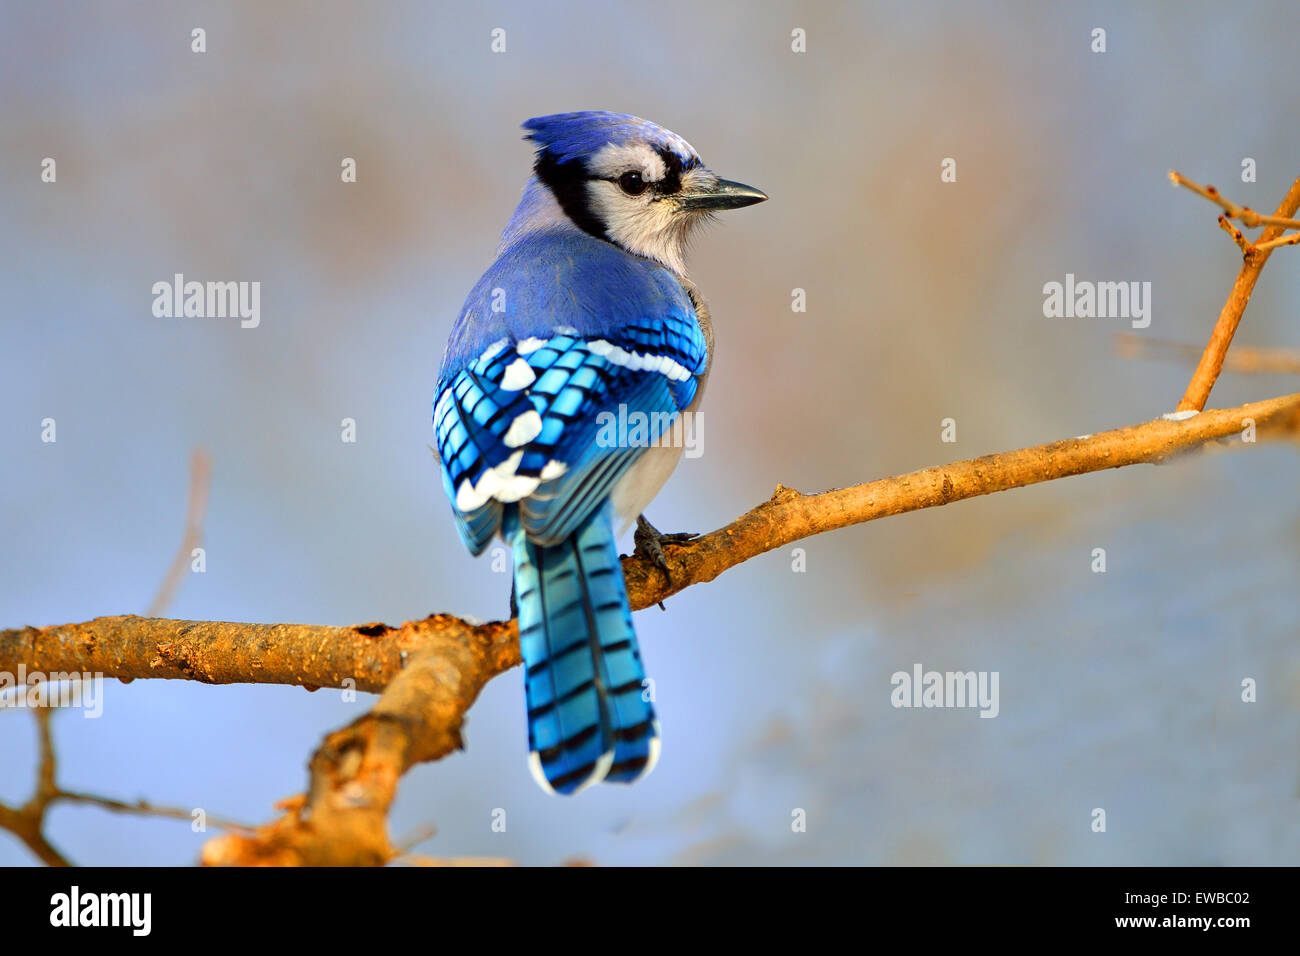 Blue Jay standing on a tree branch Stock Photo